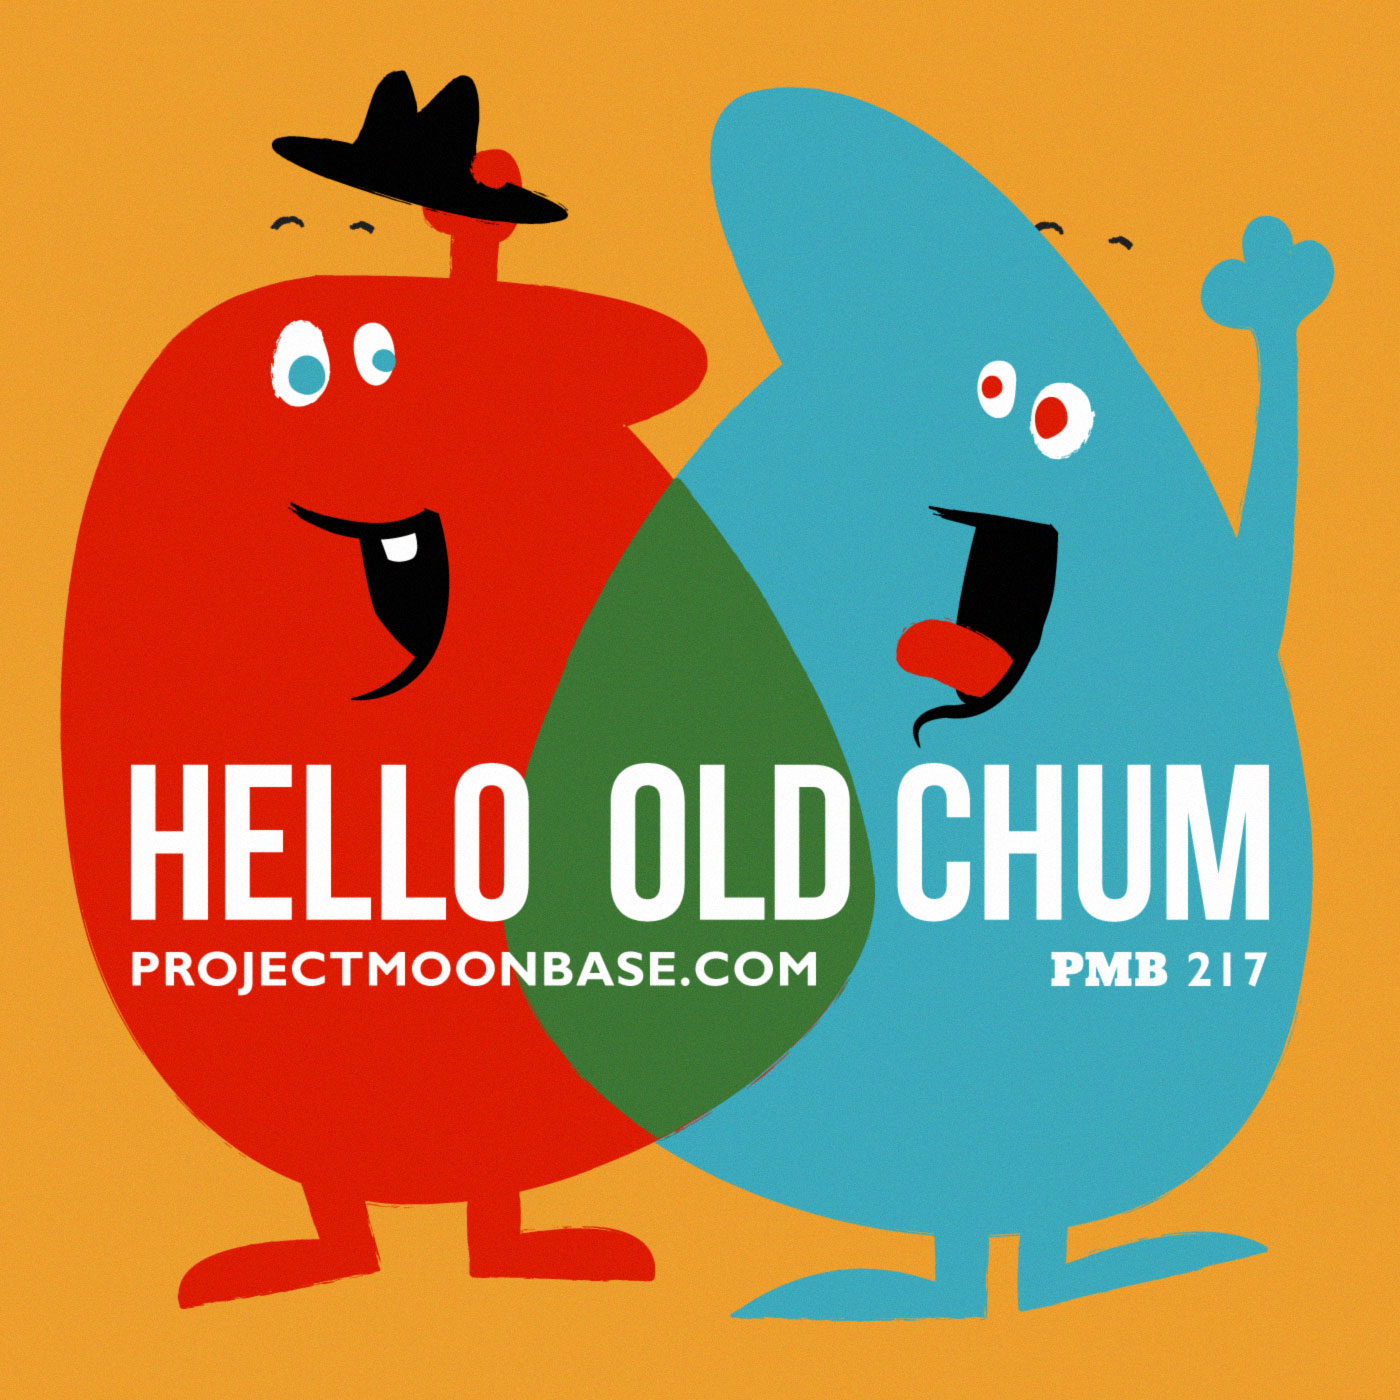 PMB217: Hello Old Chum